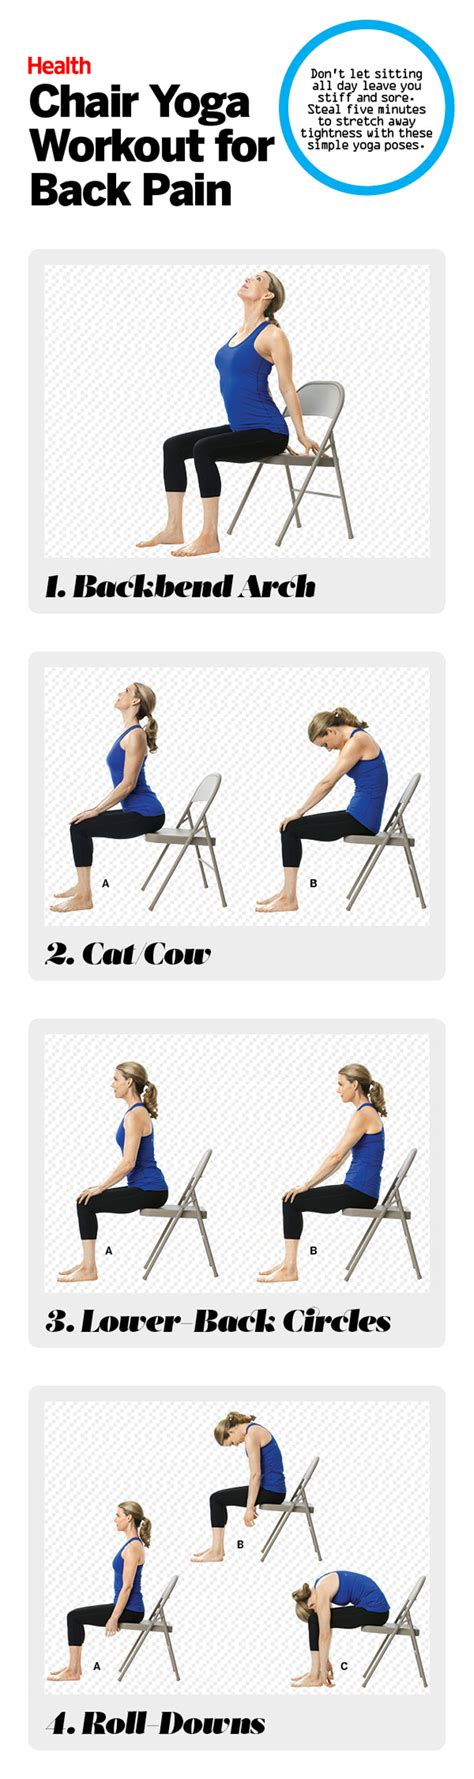 medicine chair exercises the best chair to combat back health